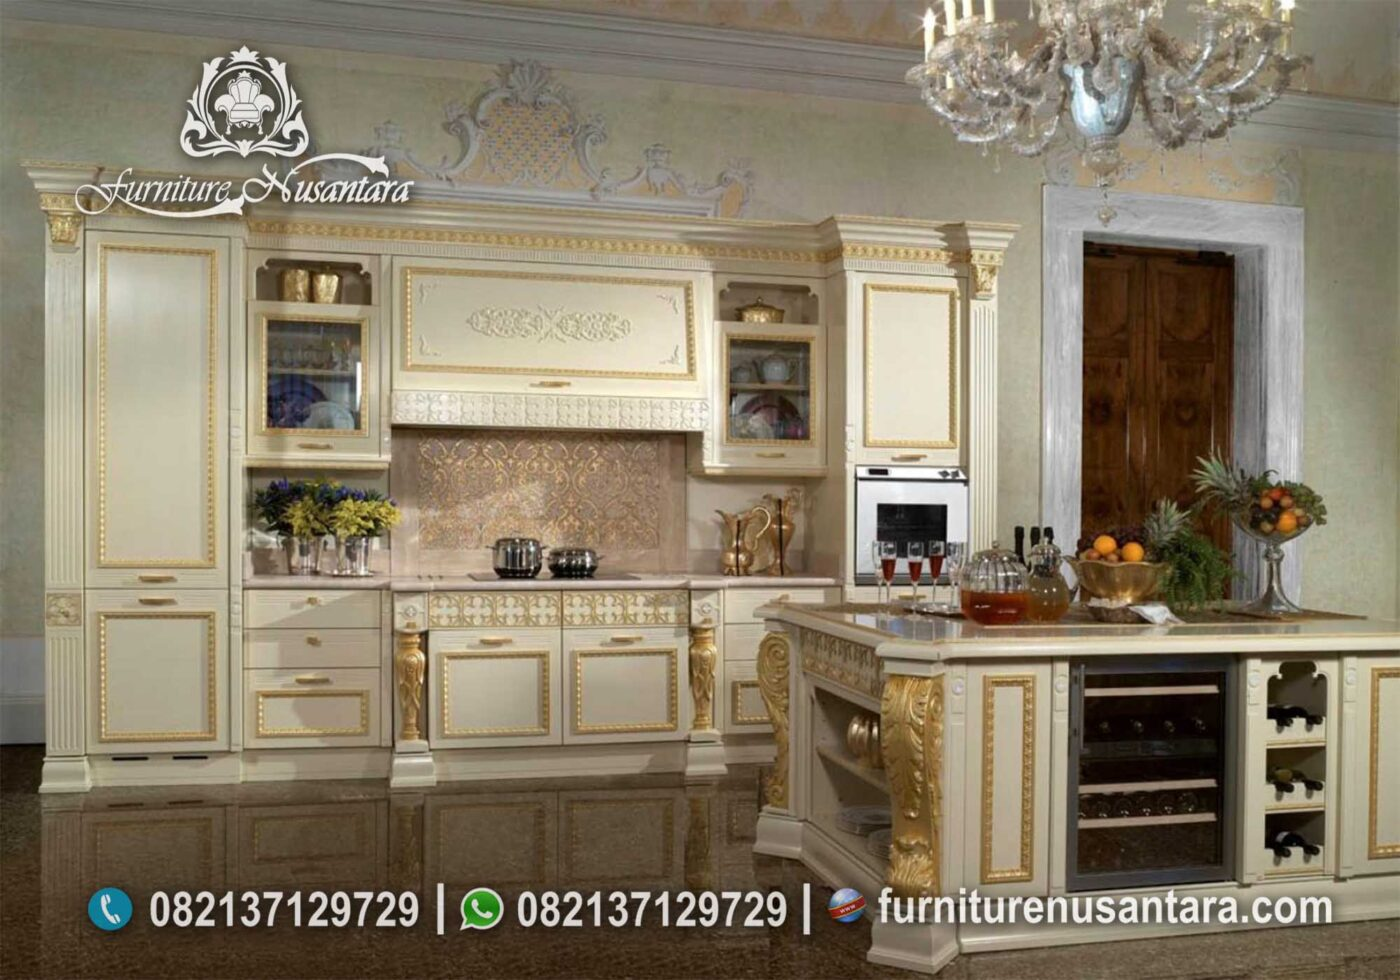 Kitchen Set Warna Cream kombinasi Emas KC-02, Furniture Nusantara